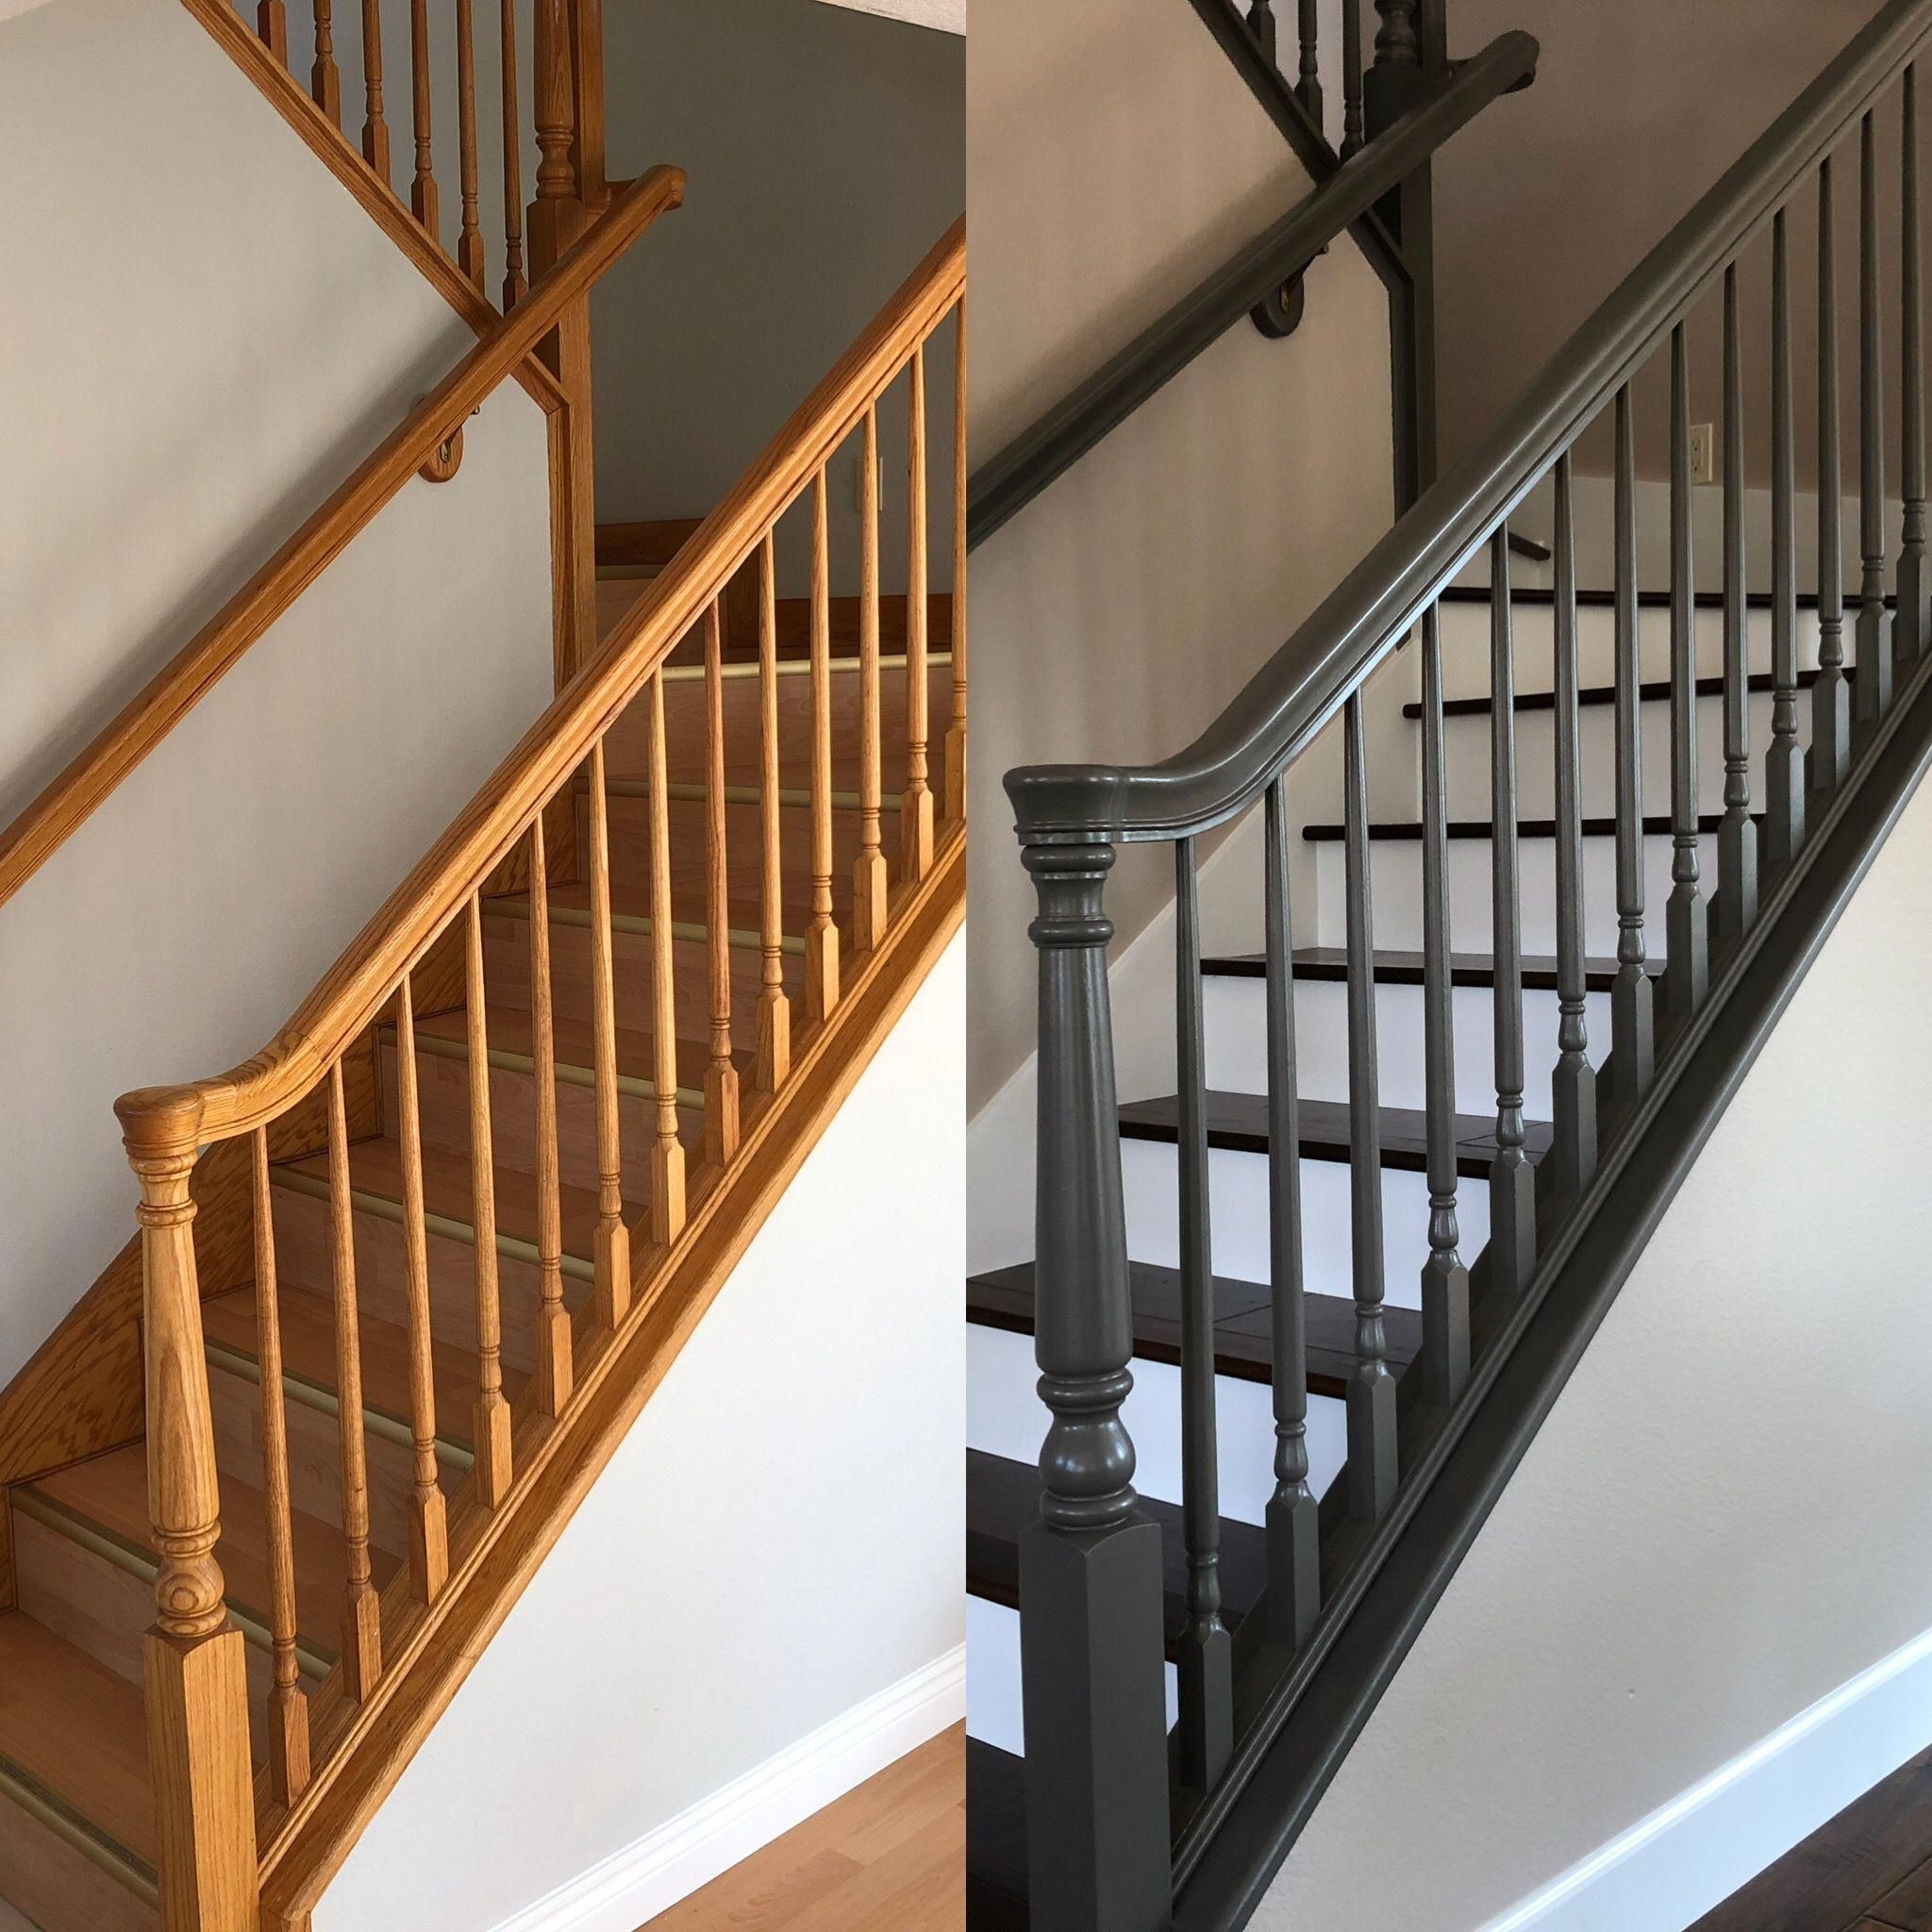 Before and After pictures of what your staircase could look like with a little flooring love! #remodelstaircase #stairideas #stairs #homeremodelingpictures #staircaseideas